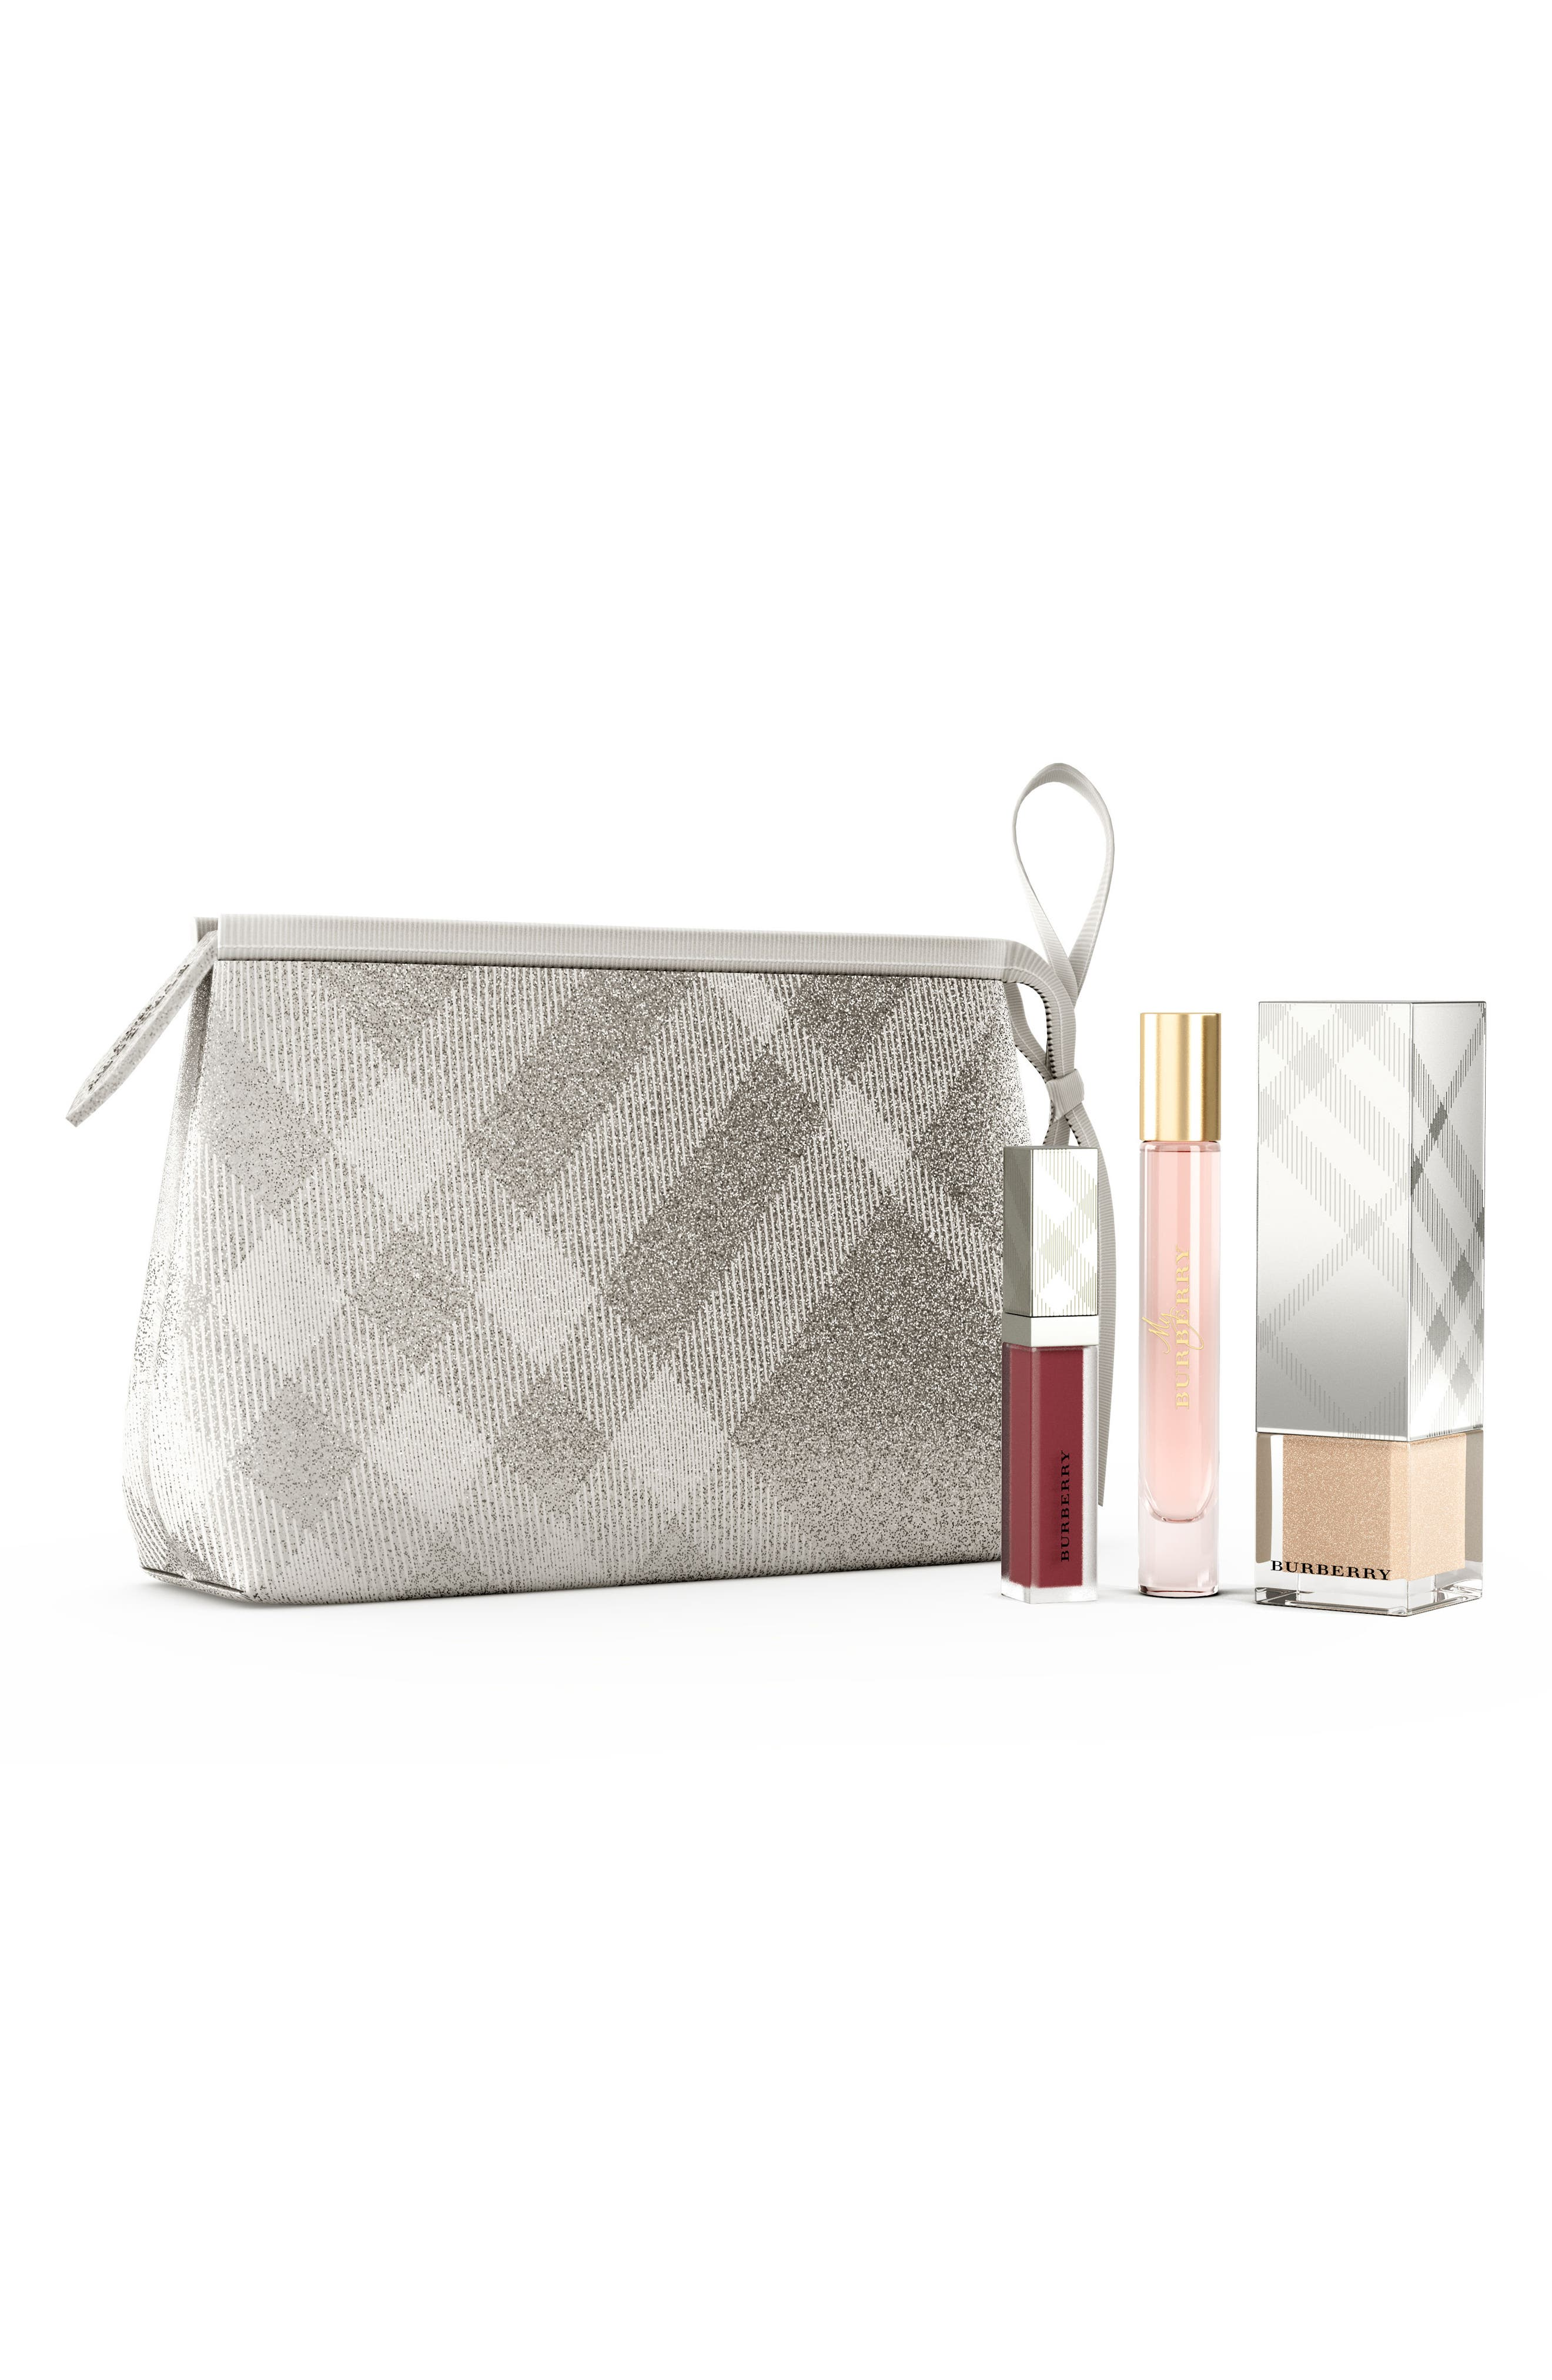 Alternate Image 1 Selected - Burberry Beauty Festive Beauty Pouch Collection (Limited Edition)